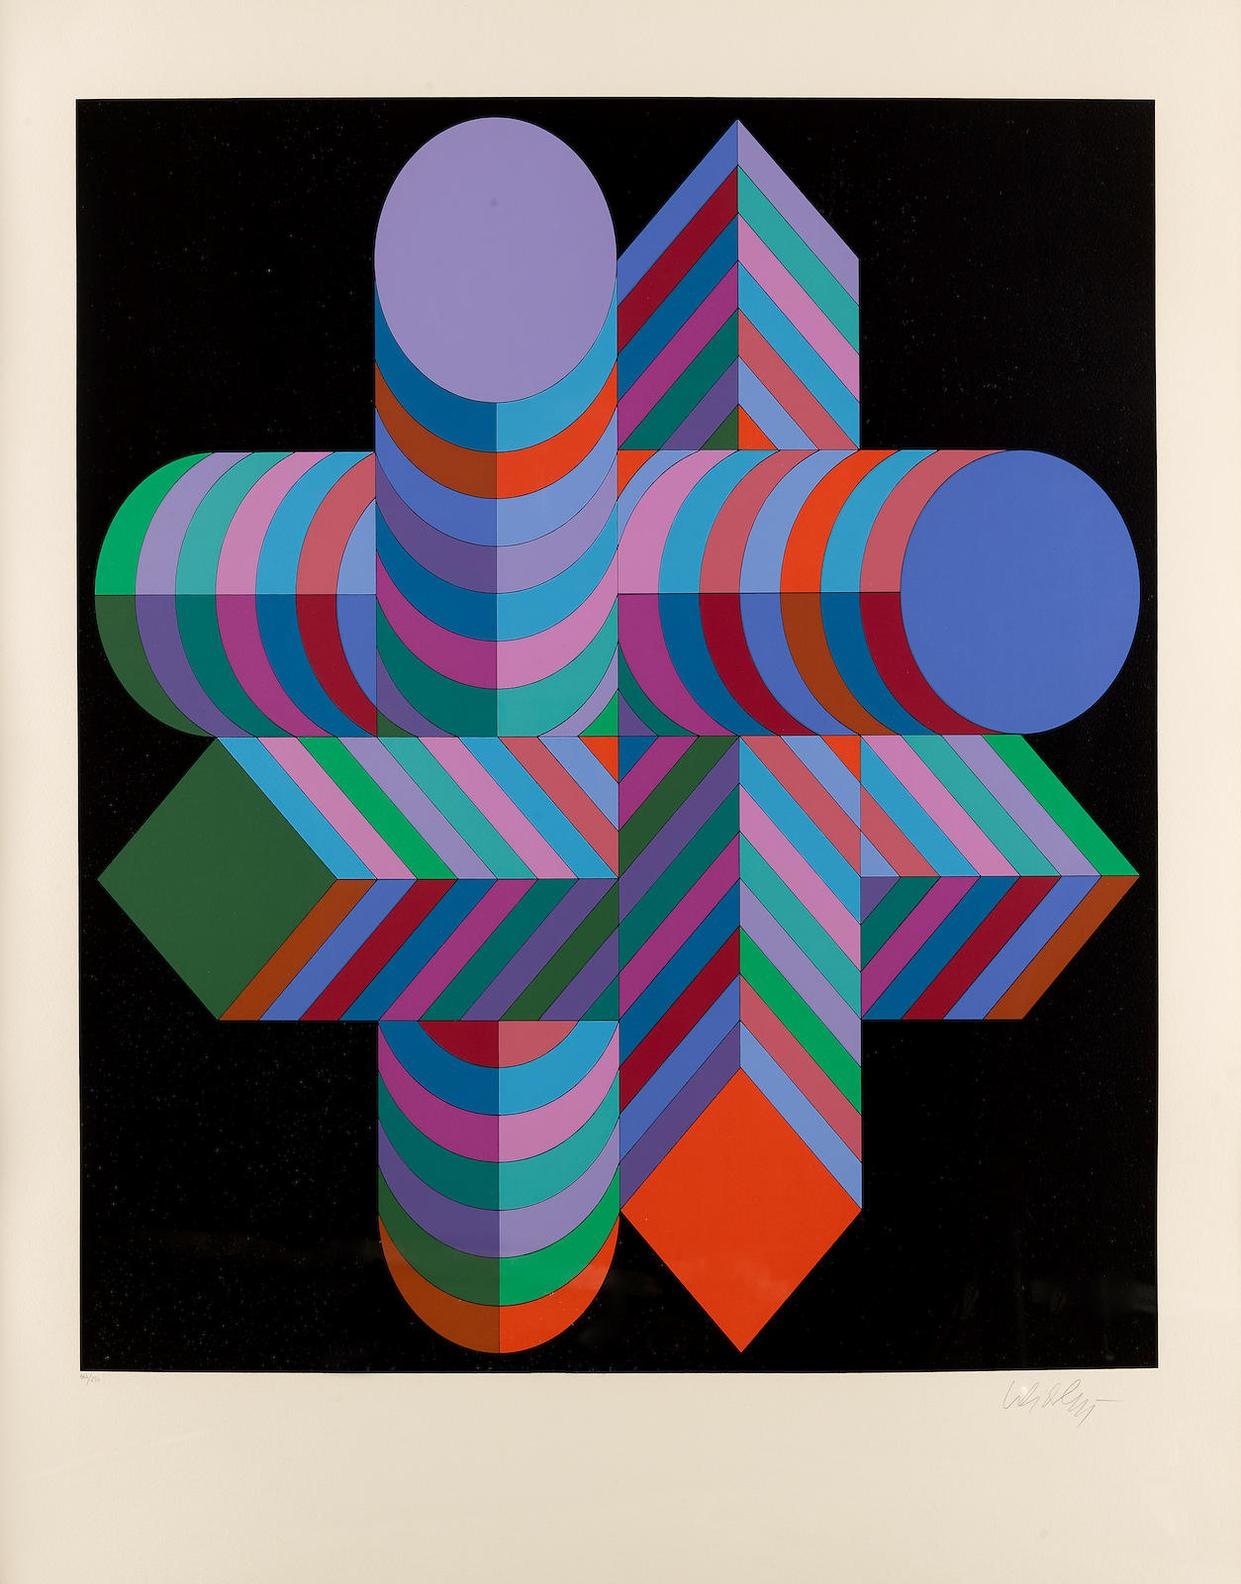 Victor Vasarely-A Group Of Four Prints, 1968-1988 (MAKK-S, 1978 Kaaba II, 1988 VY-29-H, from Album Xico, 1973 Untitled, from Permutation, 1968)-1988